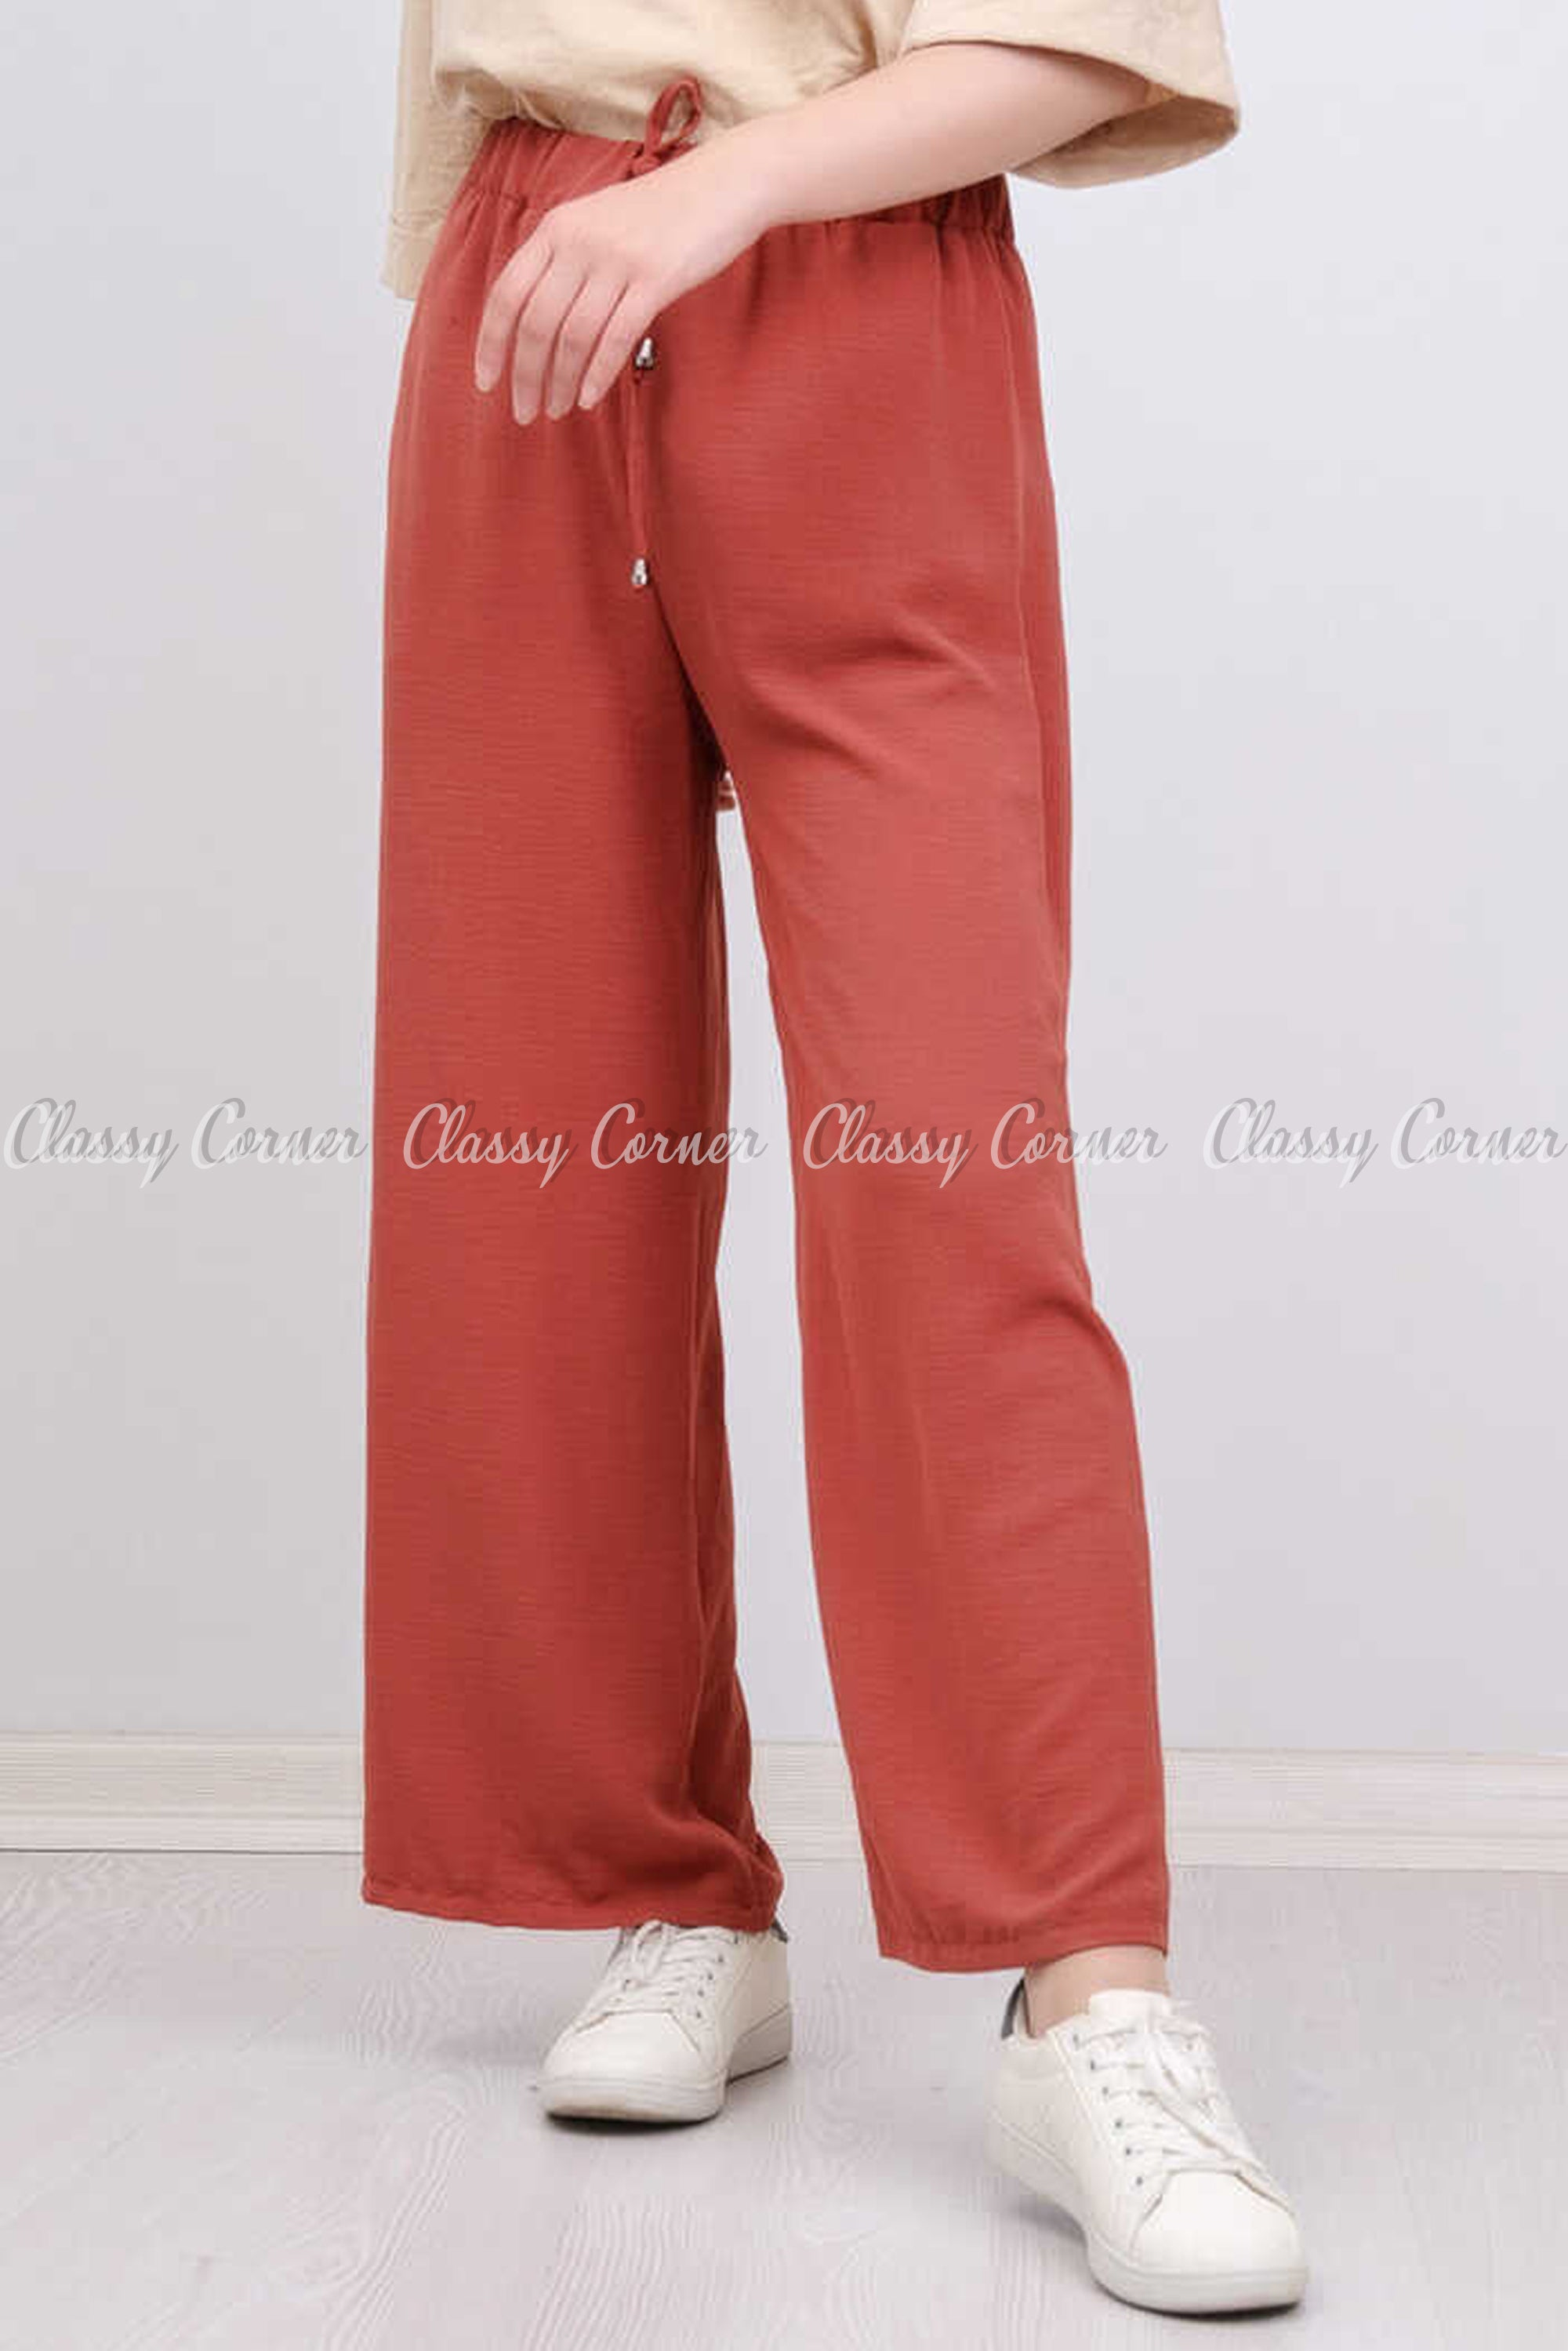 Elastic Waist Apple Red Modest Comfy Pants